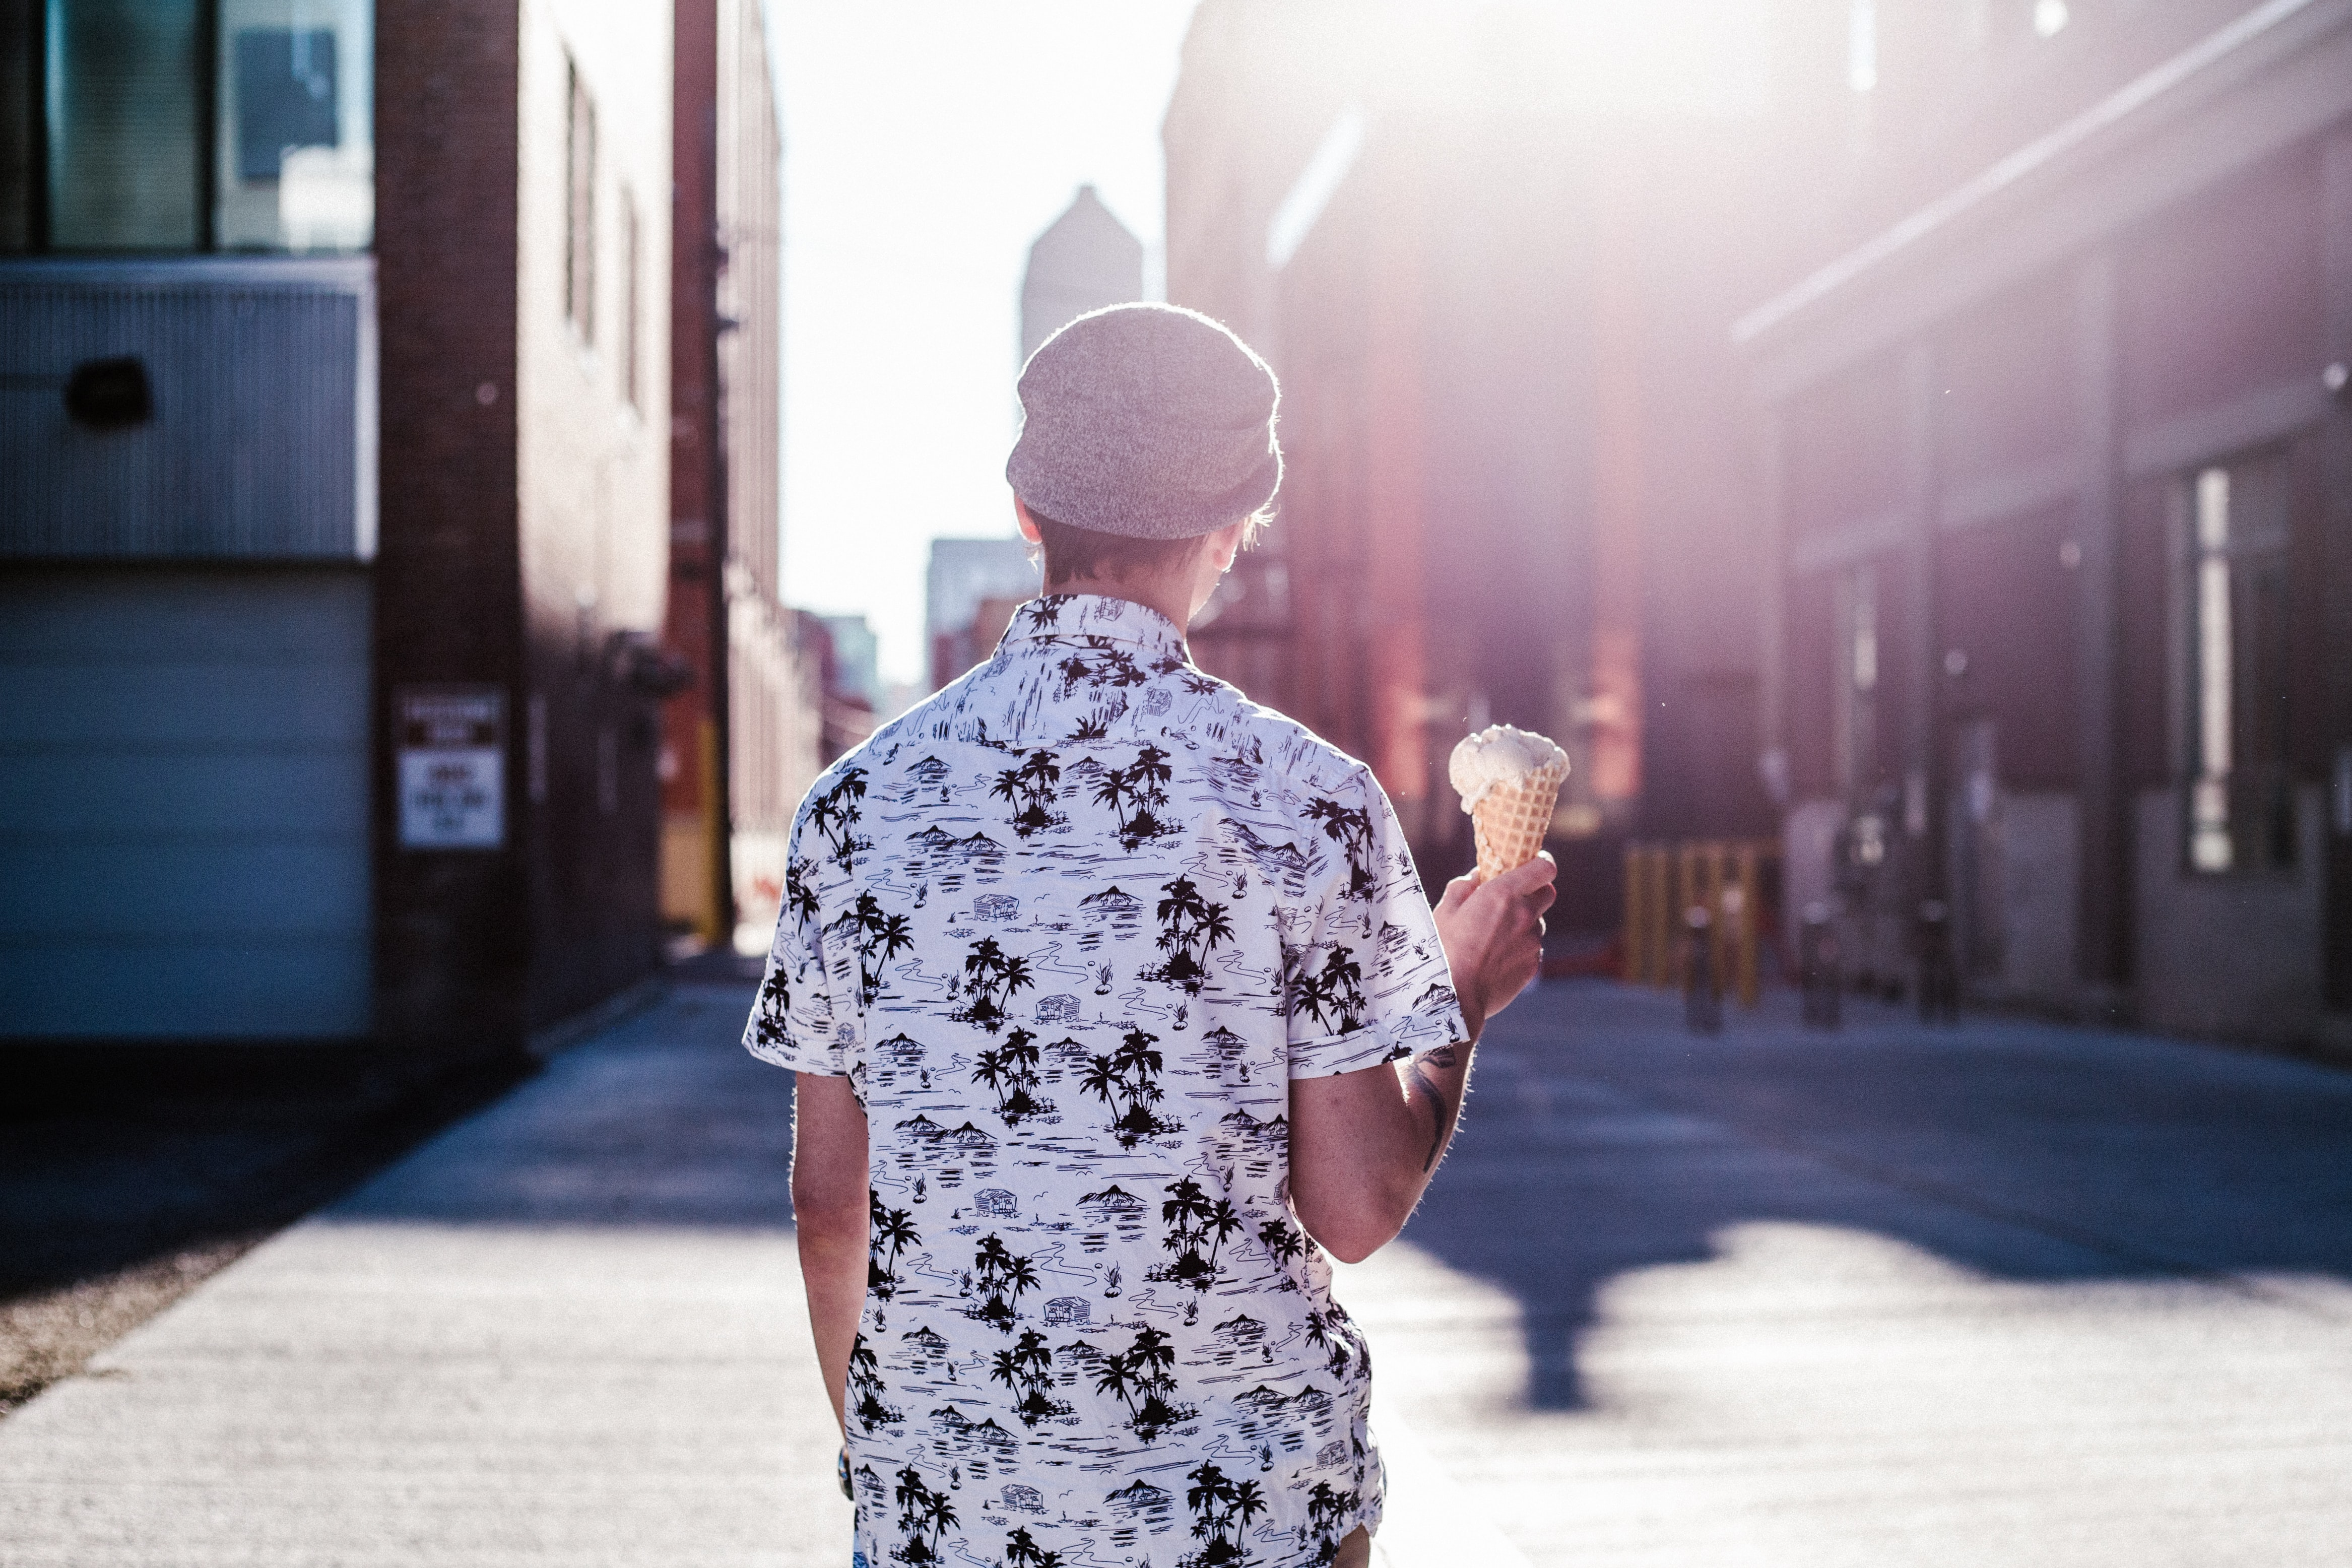 Person in a hat and tropical shirt holding an ice cream cone